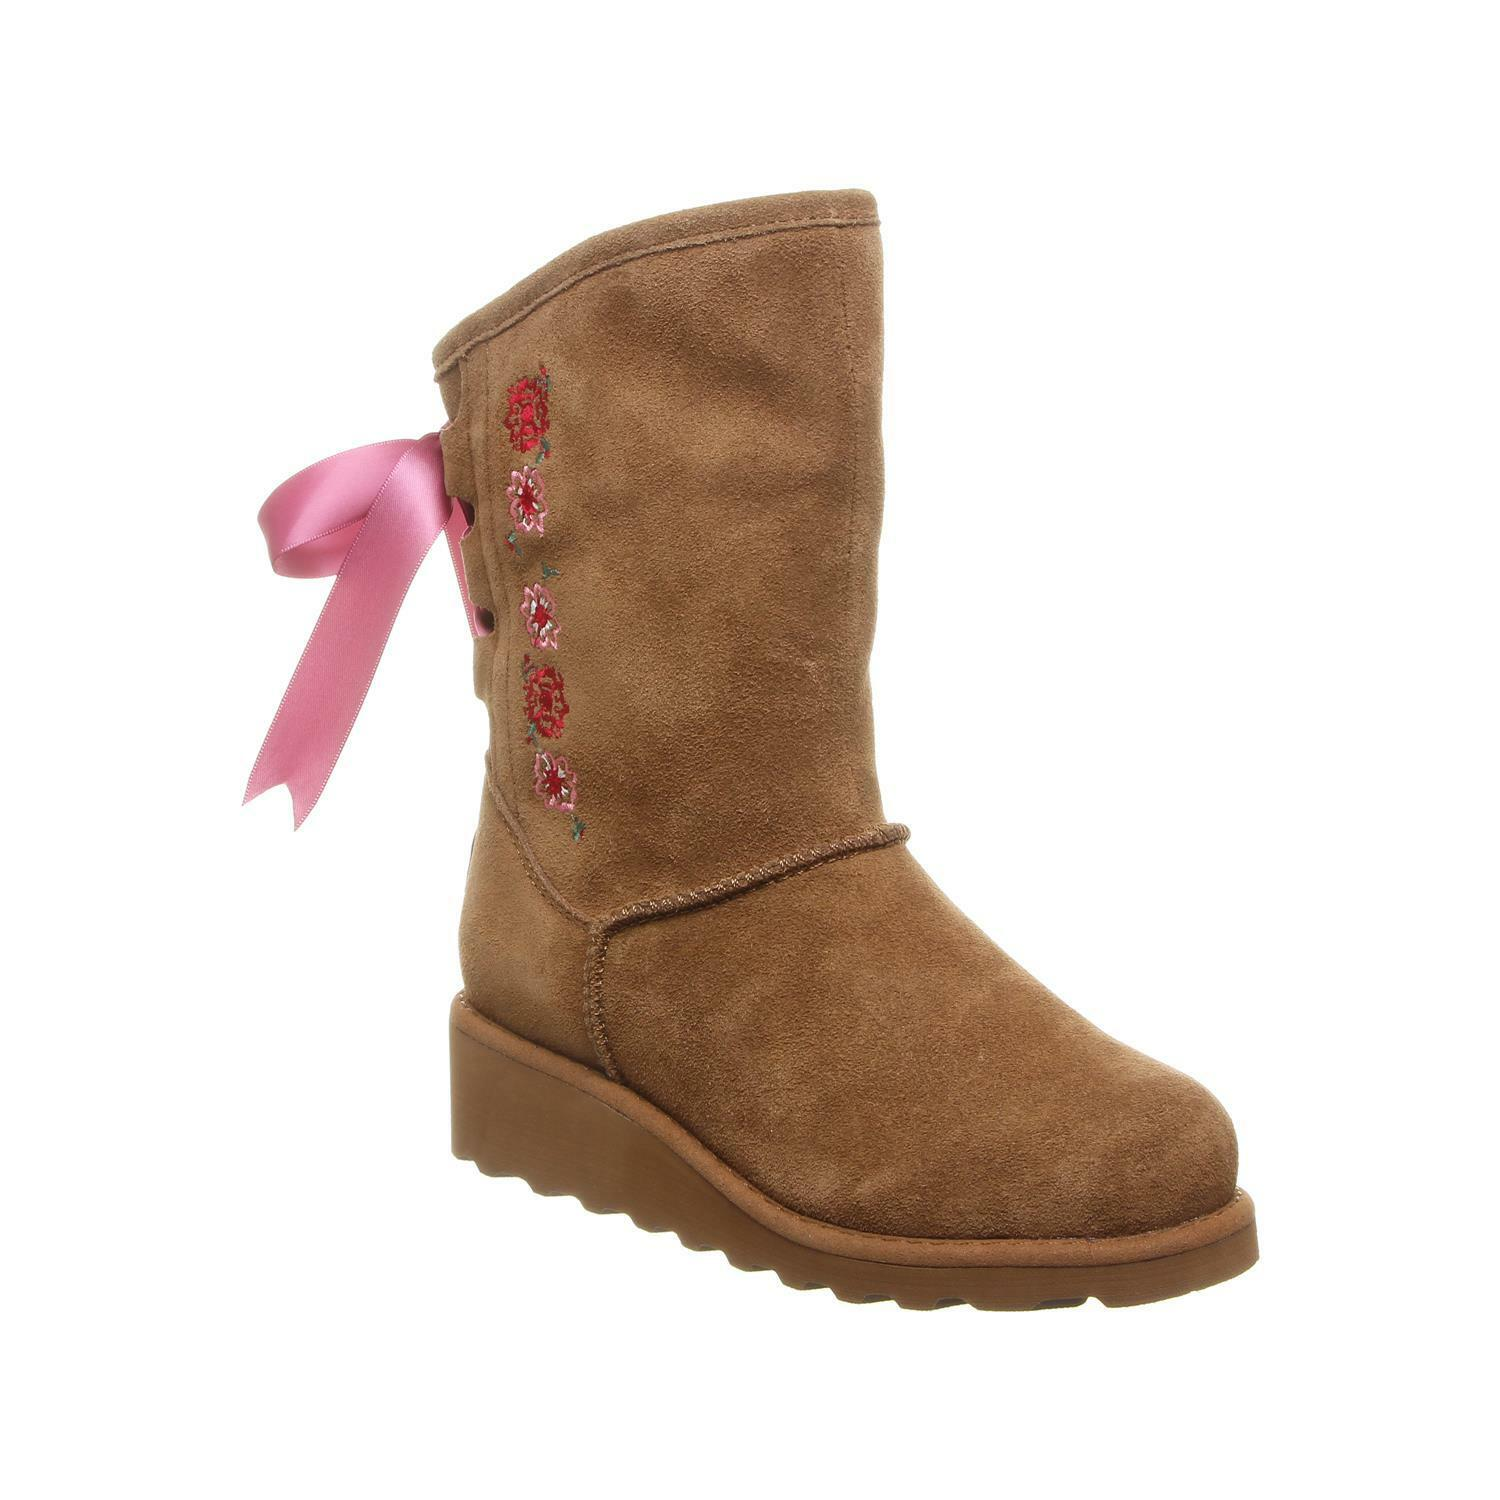 Bearpaw Carly Youth Youth Youth - Kids' Suede avvio 2171y Hickory - 4 M Us Big Kid c88935